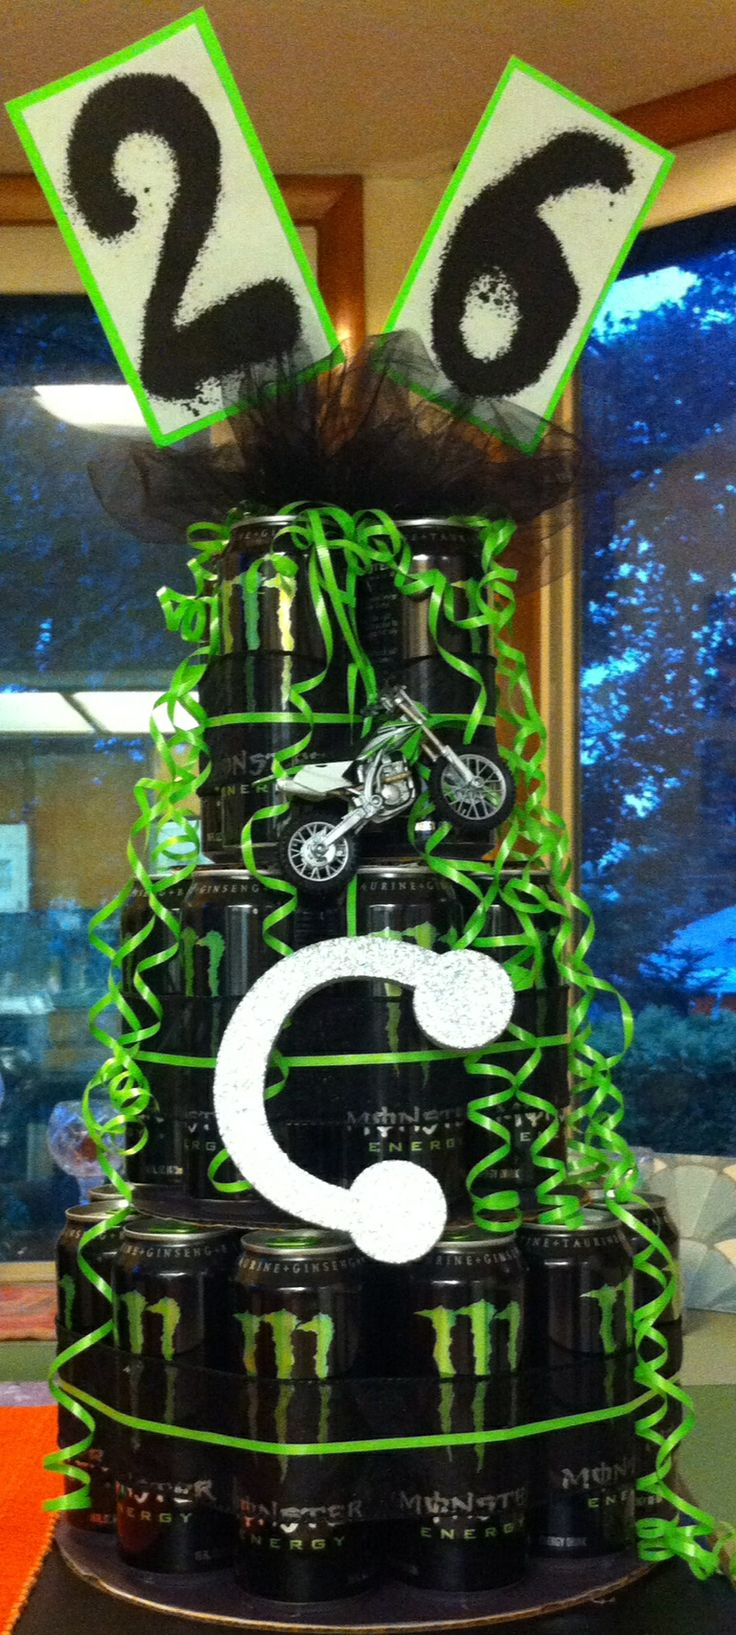 Can cake tower for my husbands birthday!!! Were having a Monster Energy themed birthday party!